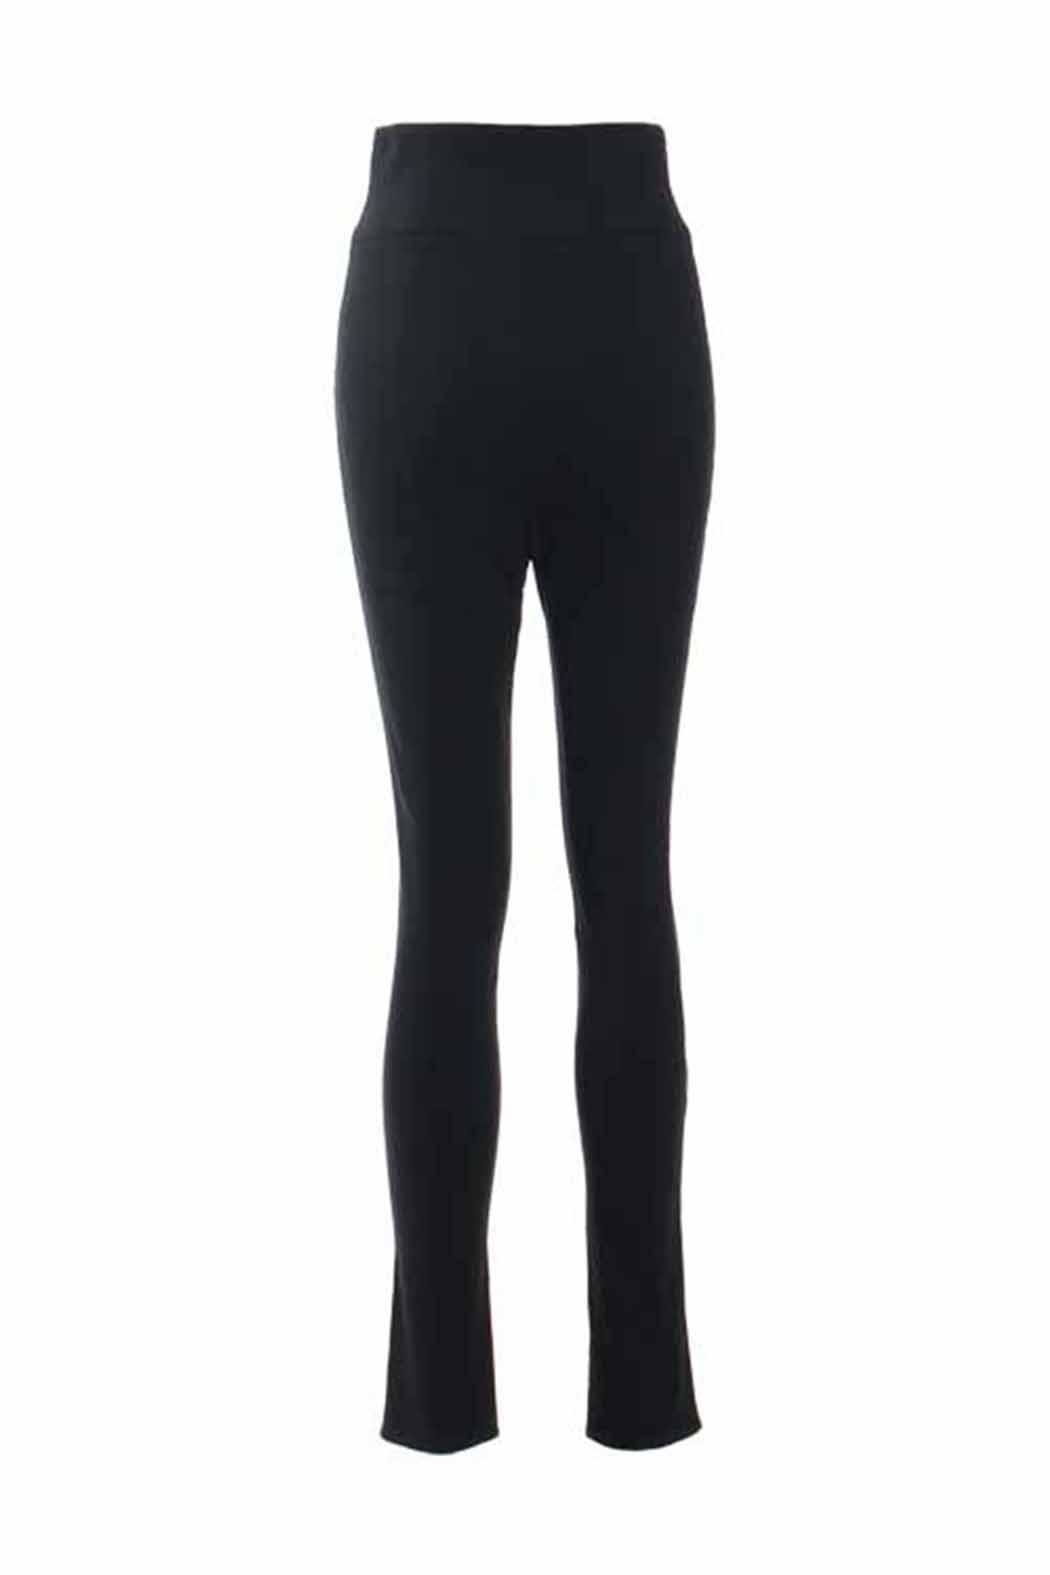 Renamed Clothing High Waist Pants - Front Full Image